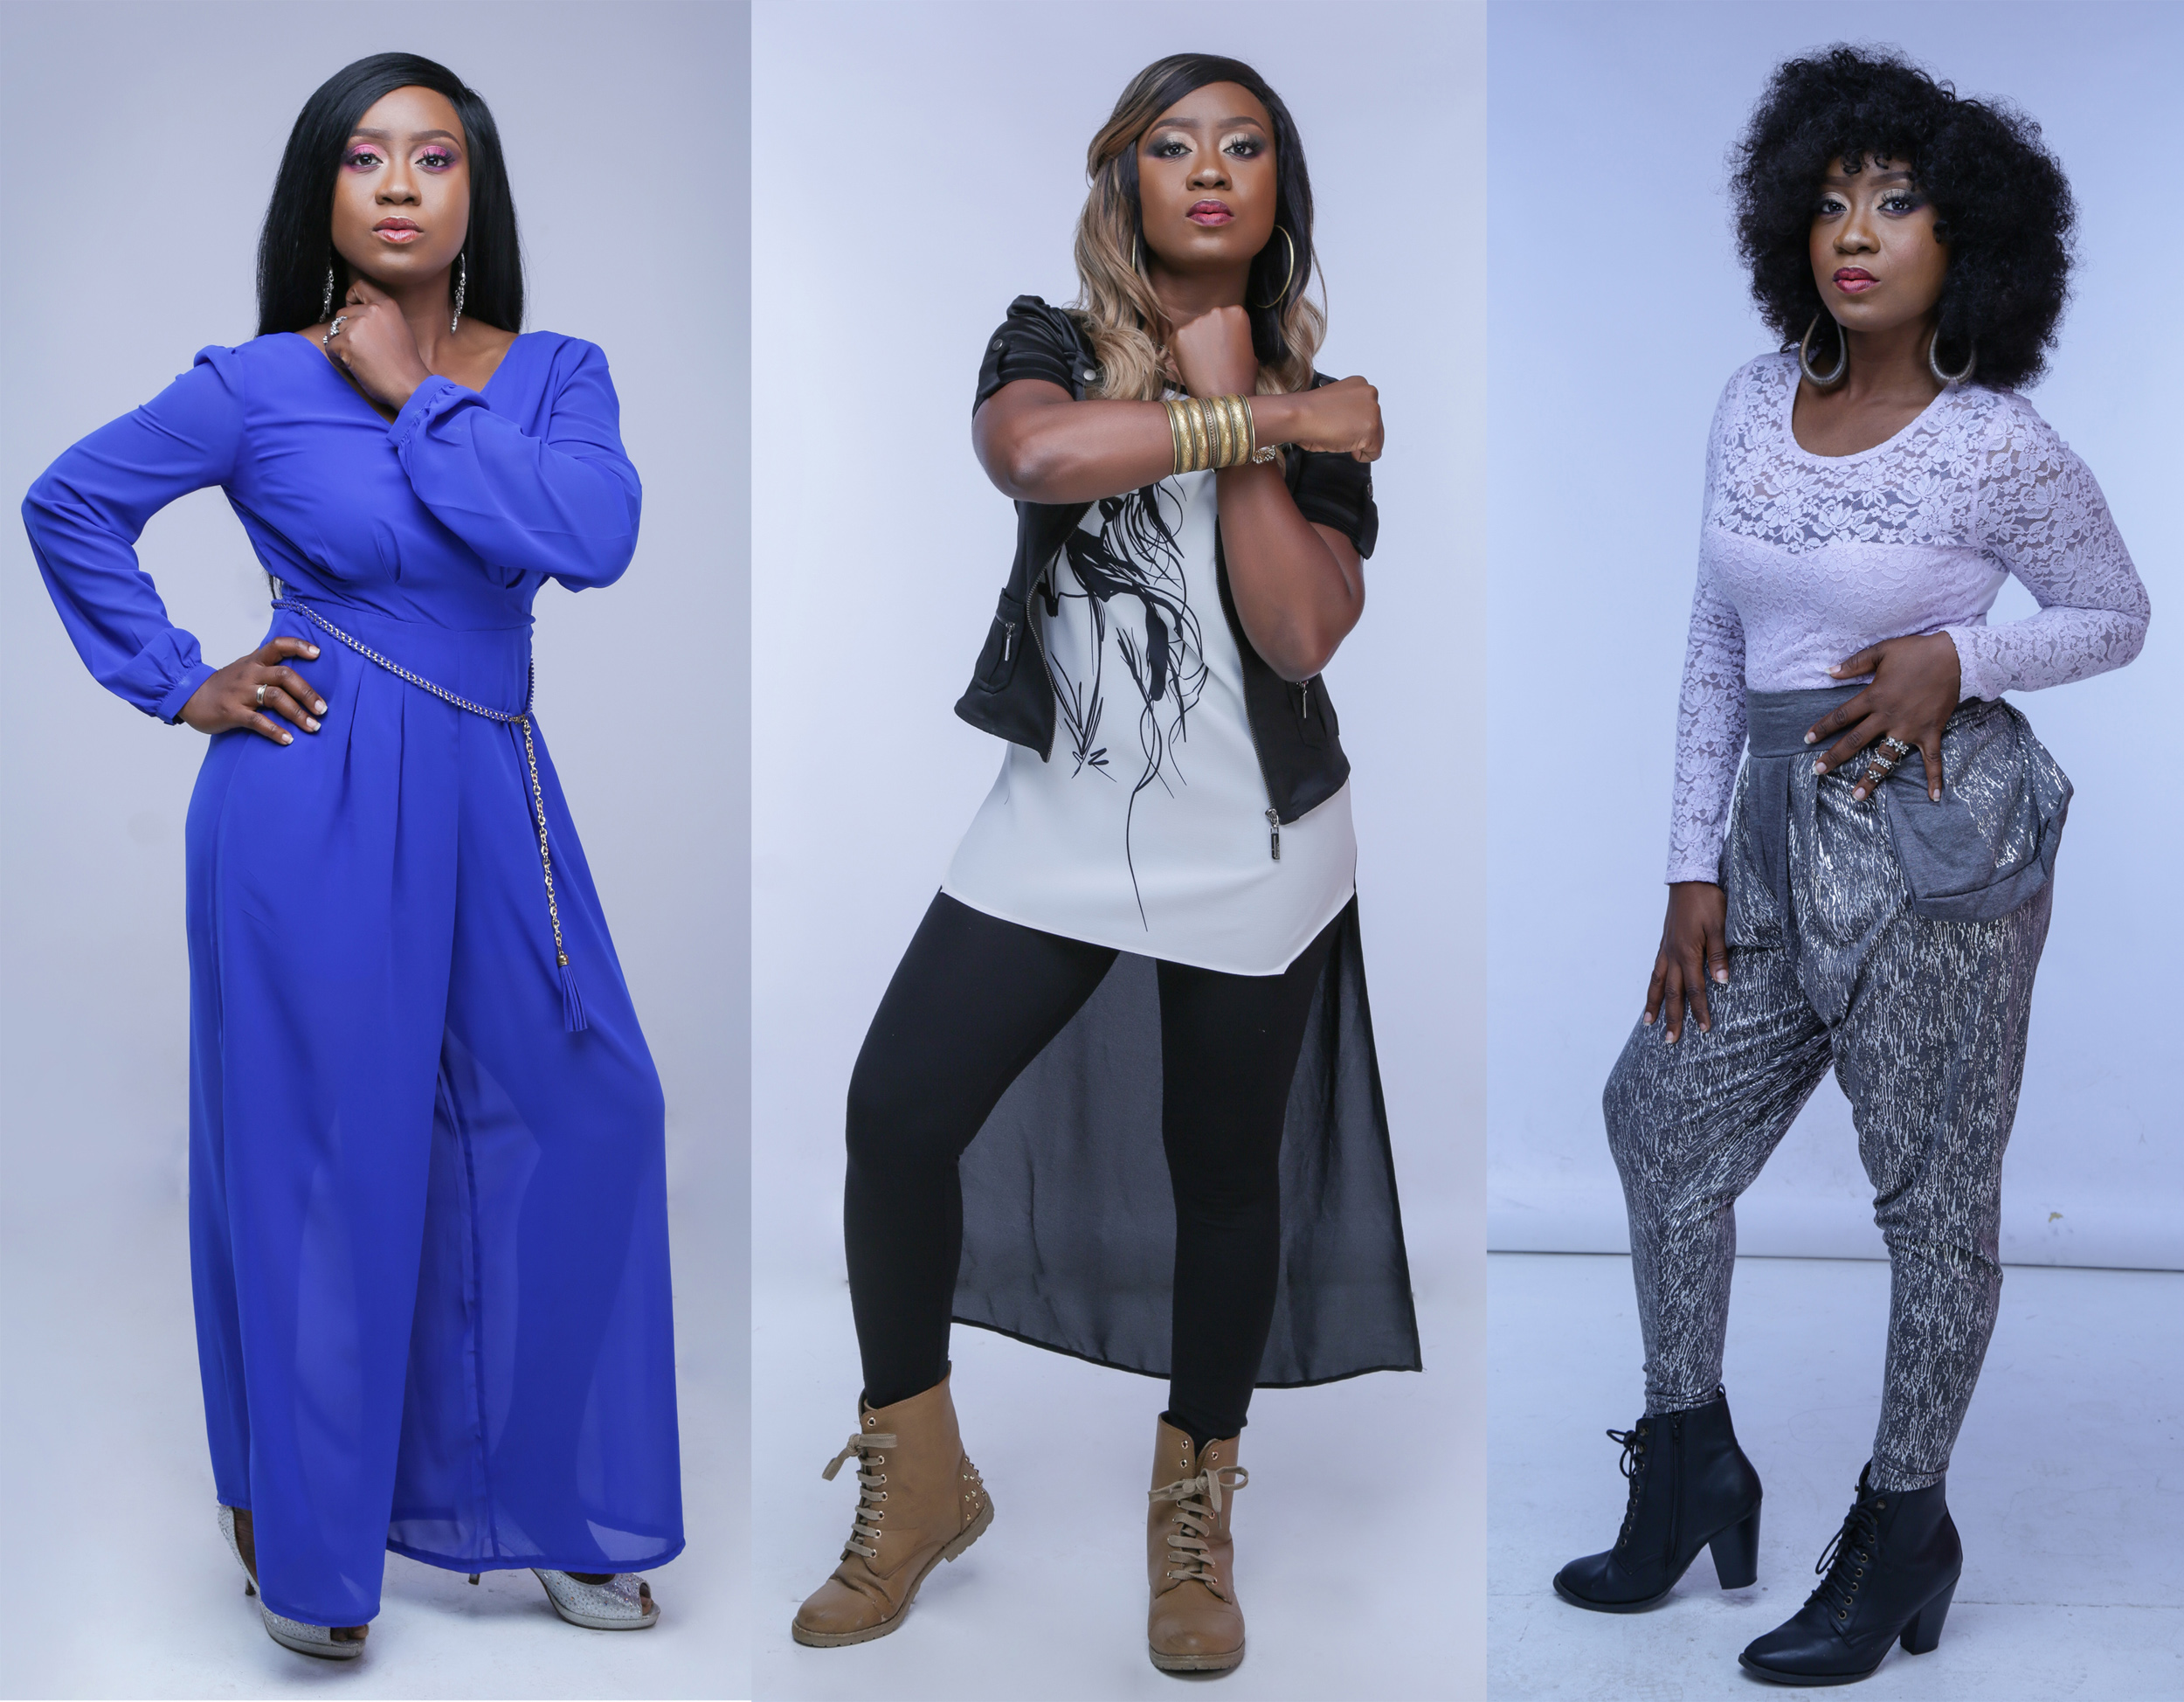 Singer, Nikki Laoye Releases New Stunning Looks In Trio Photoshoot [@NikkiLaoye]